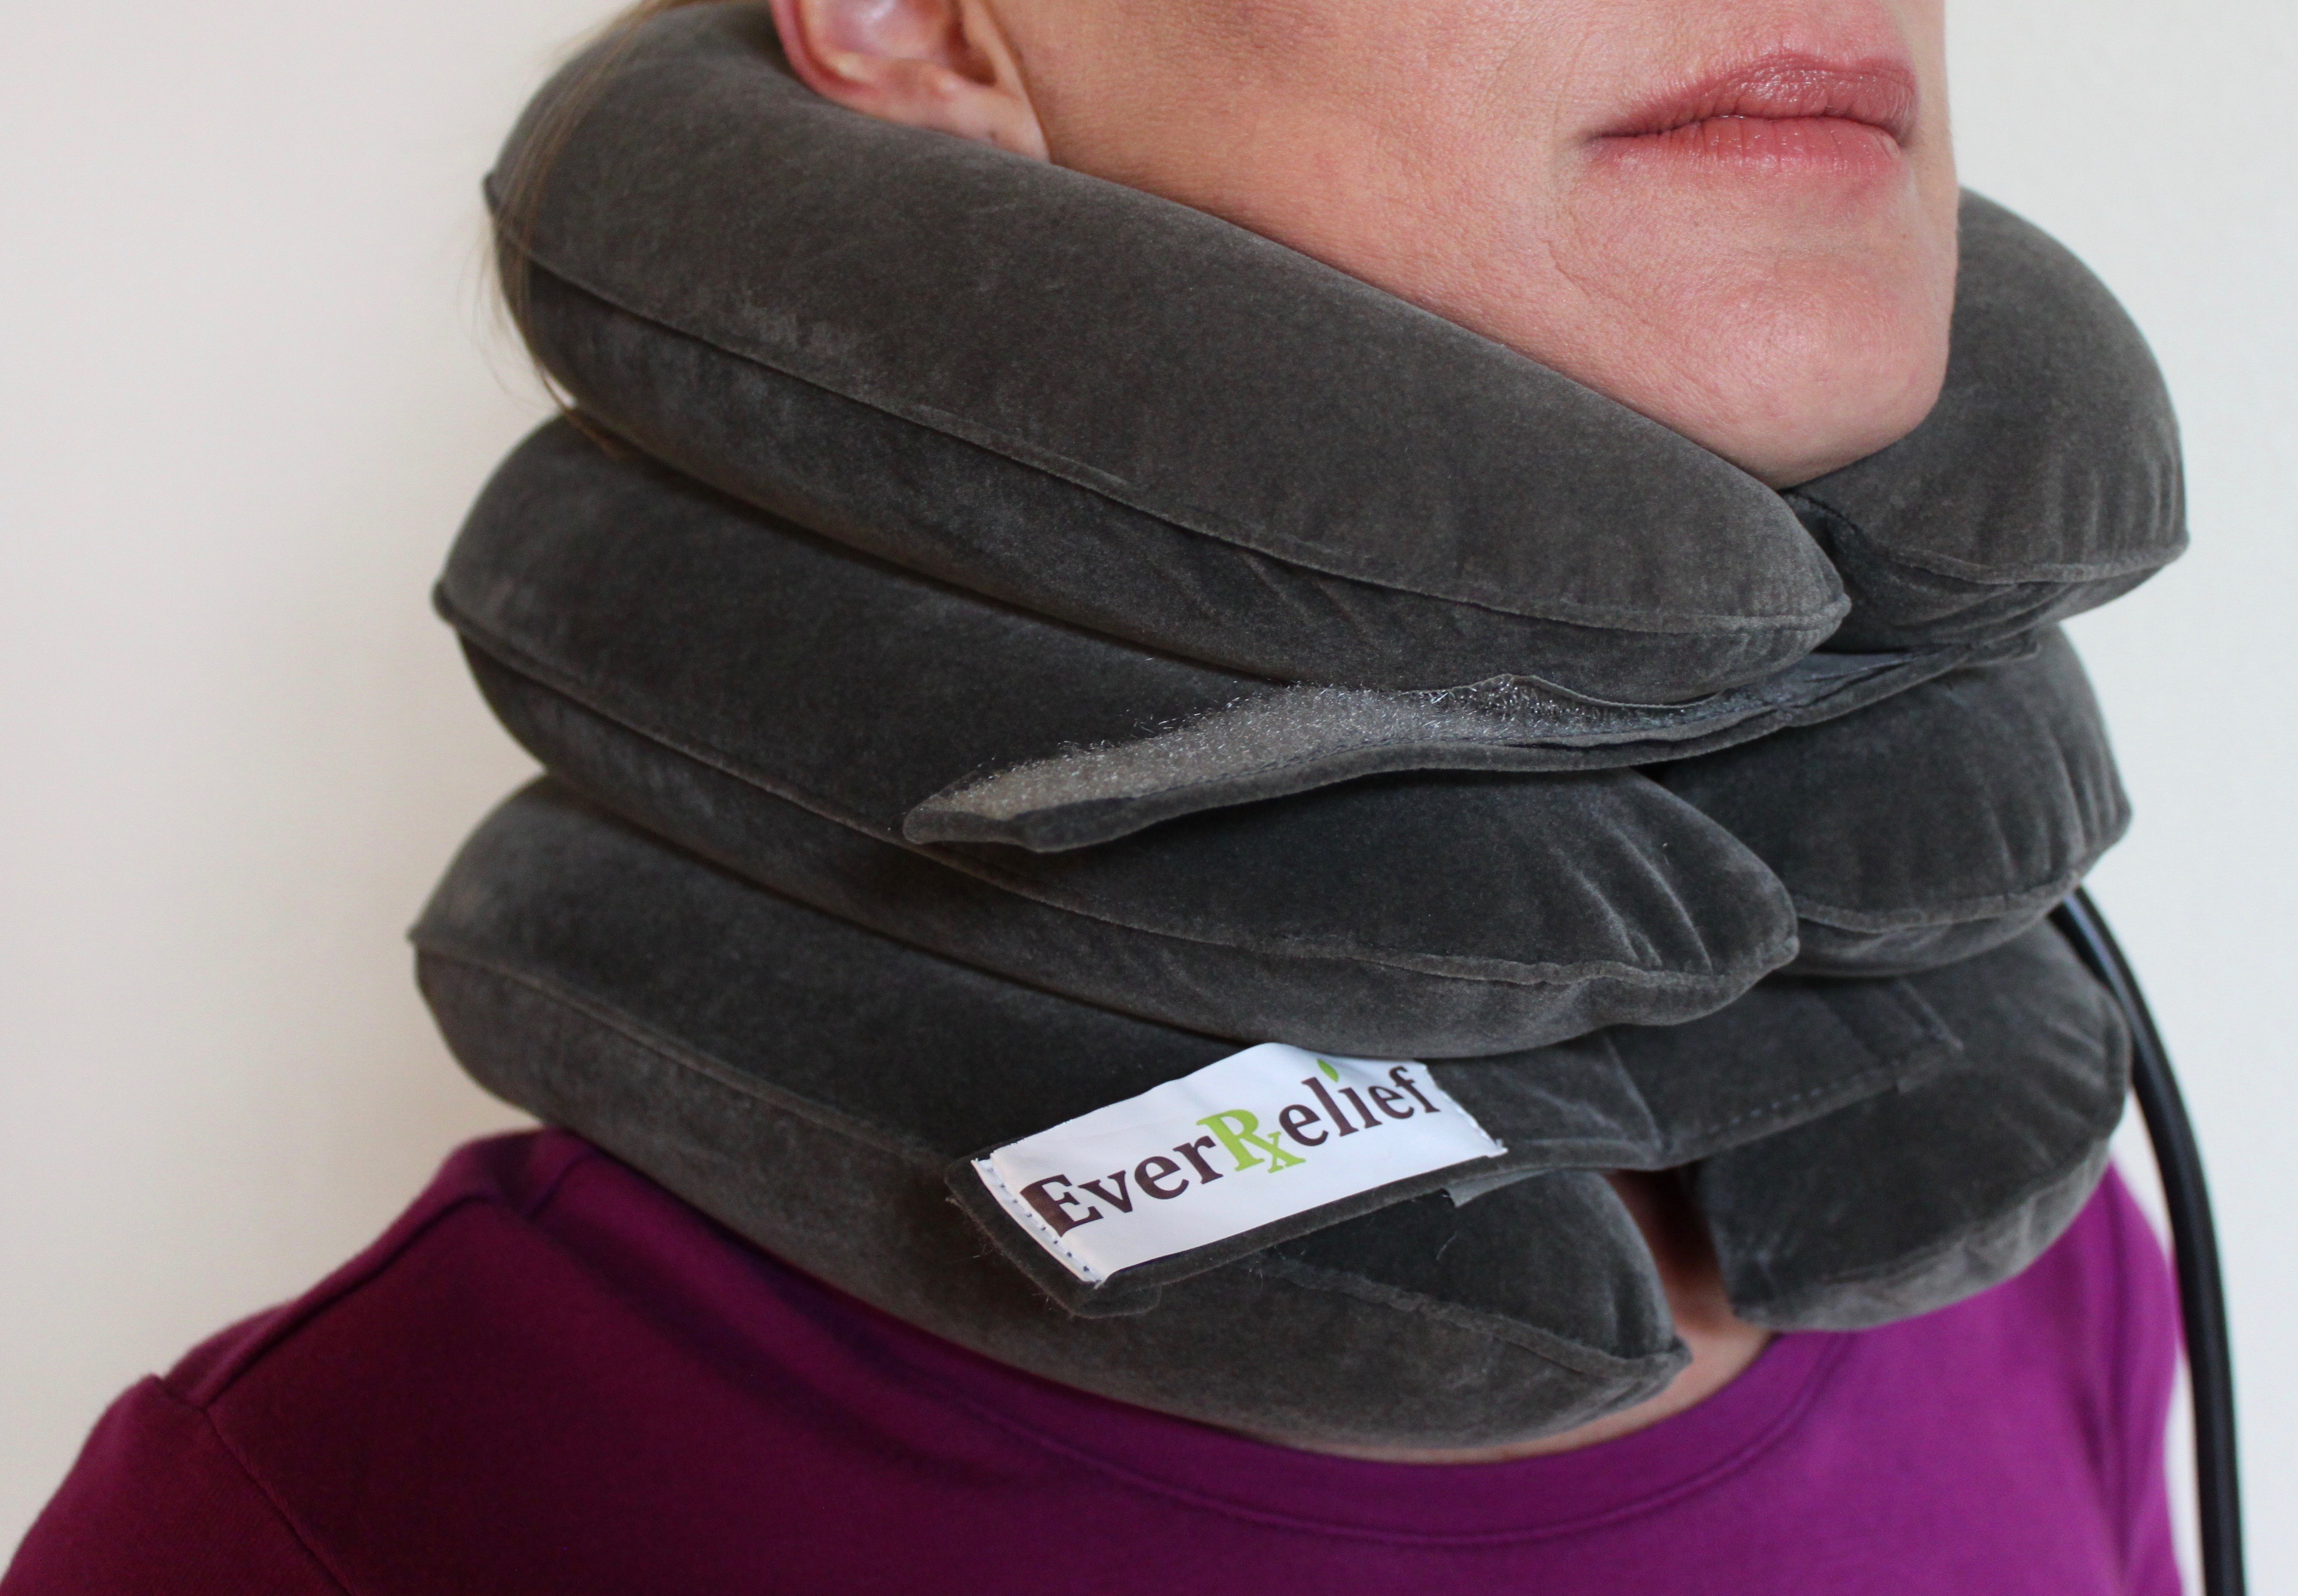 everrelief cervical neck traction device fda registered